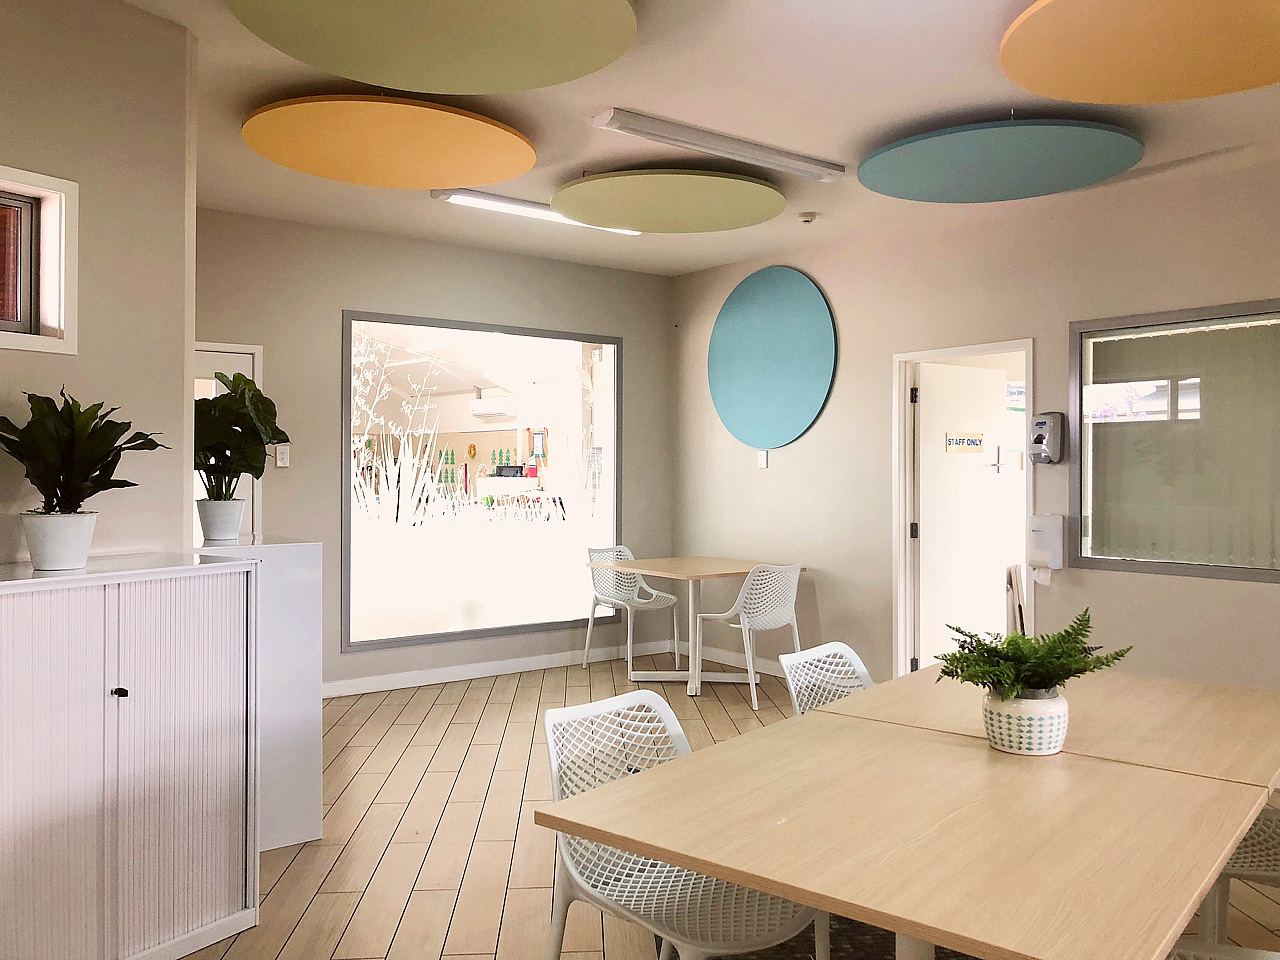 brightly coloured ceiling acoustic panels in modern staff room with laminate floors, dining table setting and window decals